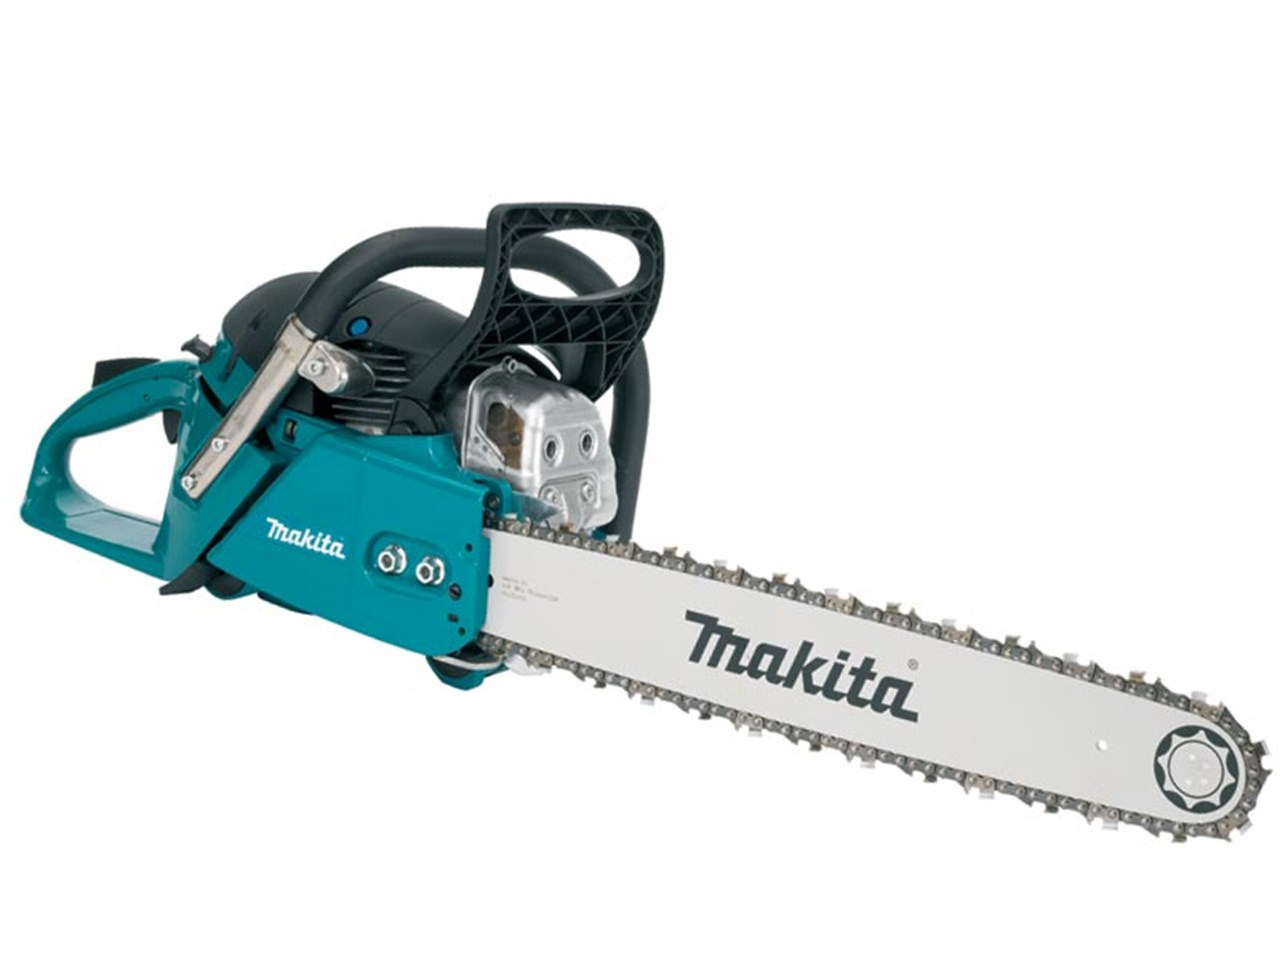 Makita ea7300p45e 726cc 2 stroke petrol chainsaw 450mm bar greentooth Choice Image